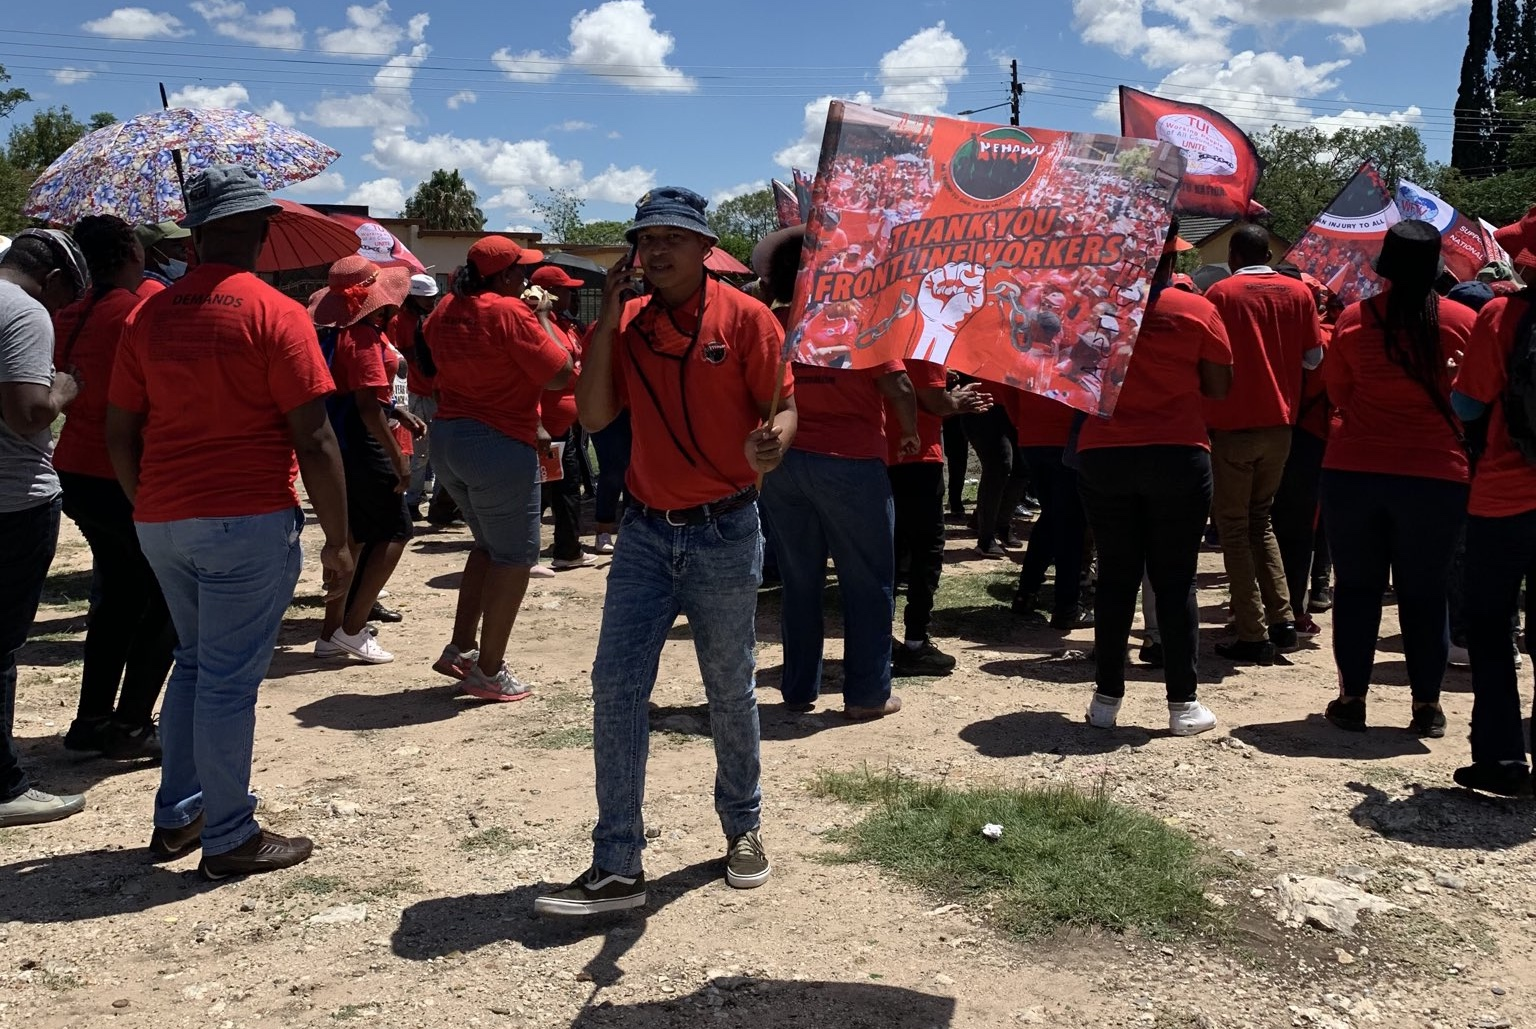 Nehawu urges SACP to stand as working class party